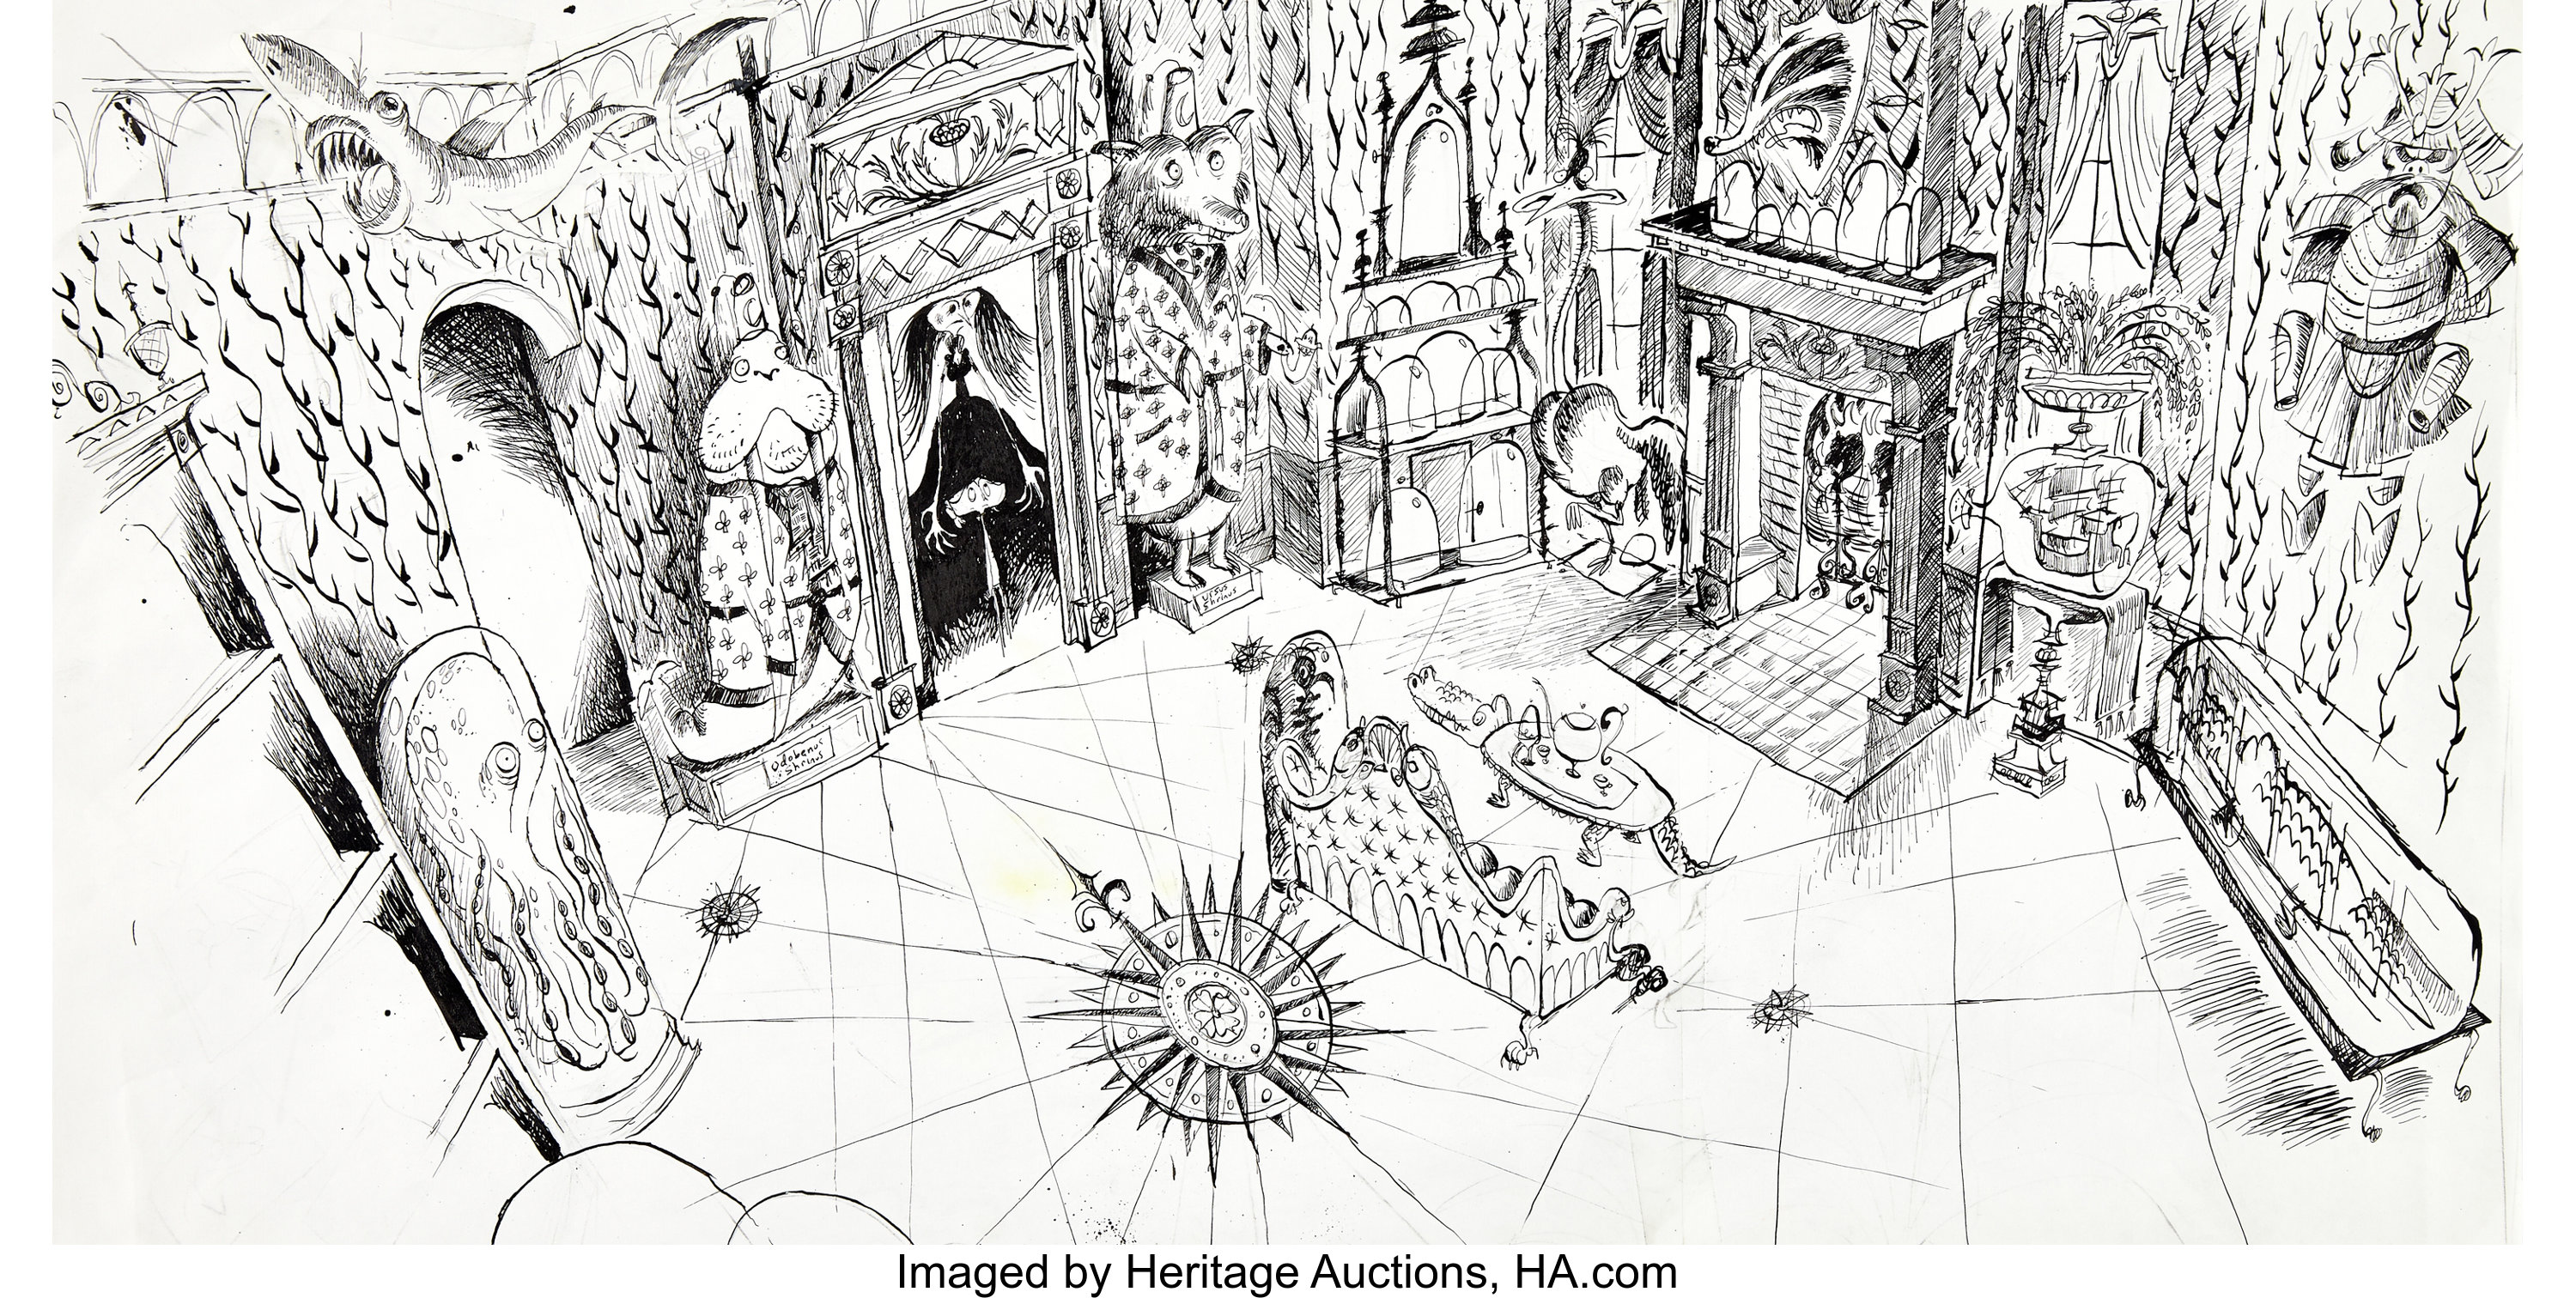 Coraline Coraline S Other Mother S Living Room Concept Original Lot 94025 Heritage Auctions